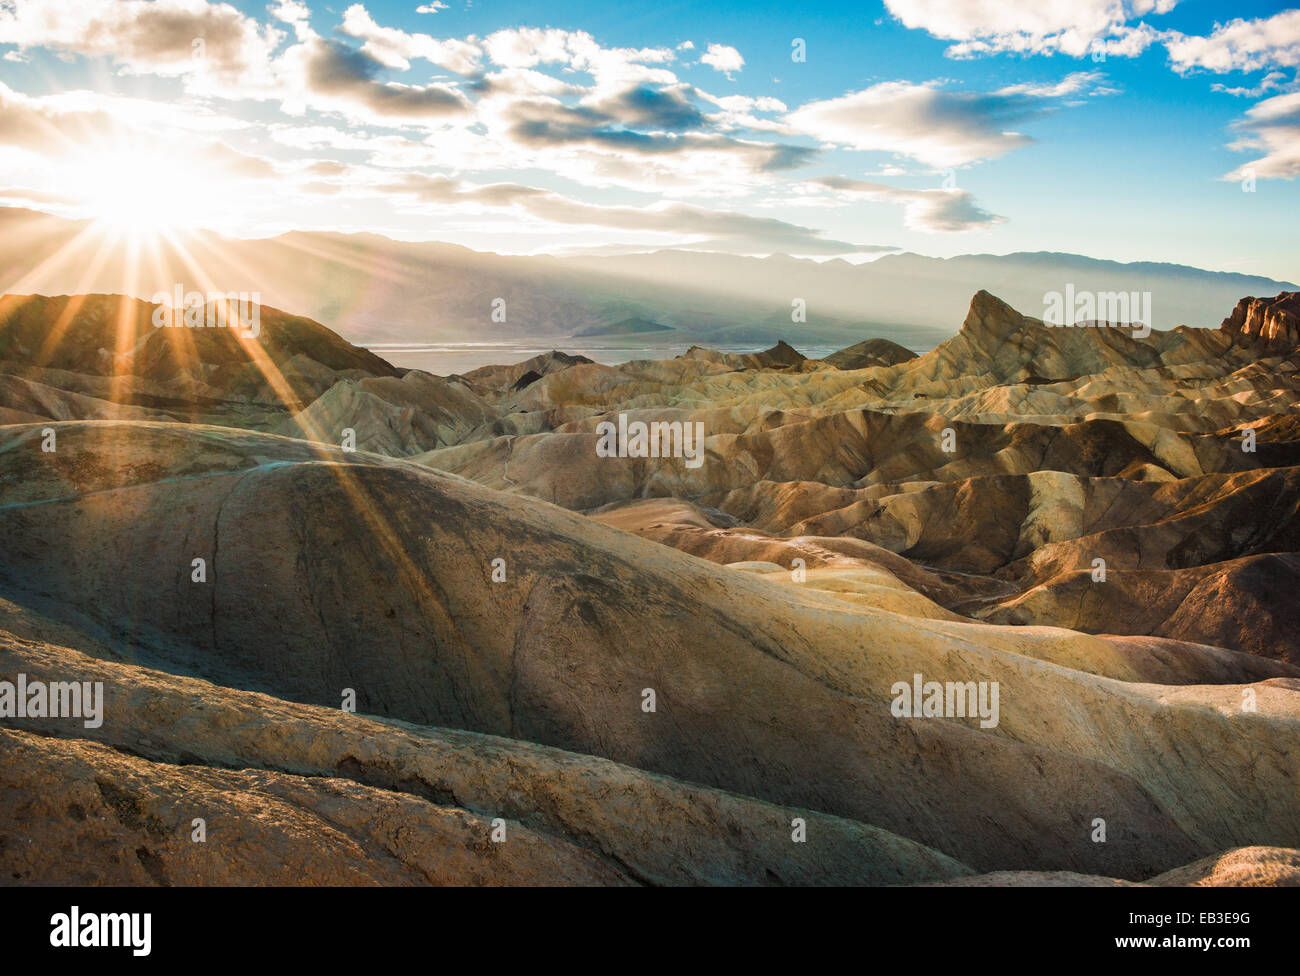 USA, California, Inyo County, Death Valley National Park, Zabriskie Point trail at sunset - Stock Image